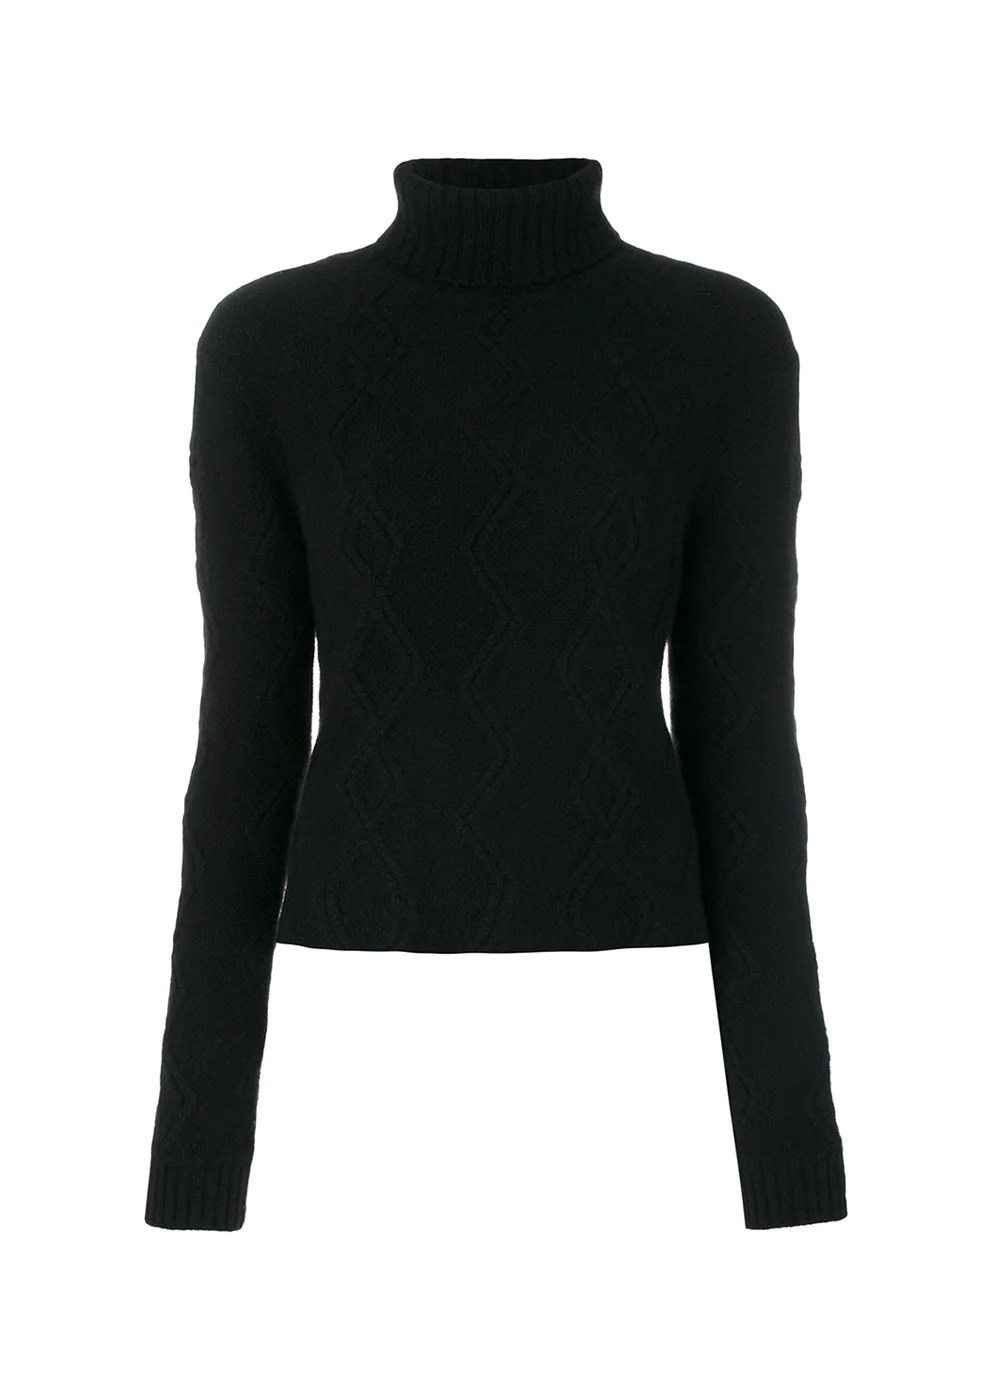 8617fa9a20efa Cashmere in Love – Tess Cable Knit Cropped Jumper – Large / Black – 100%  Cashmere – $556.00